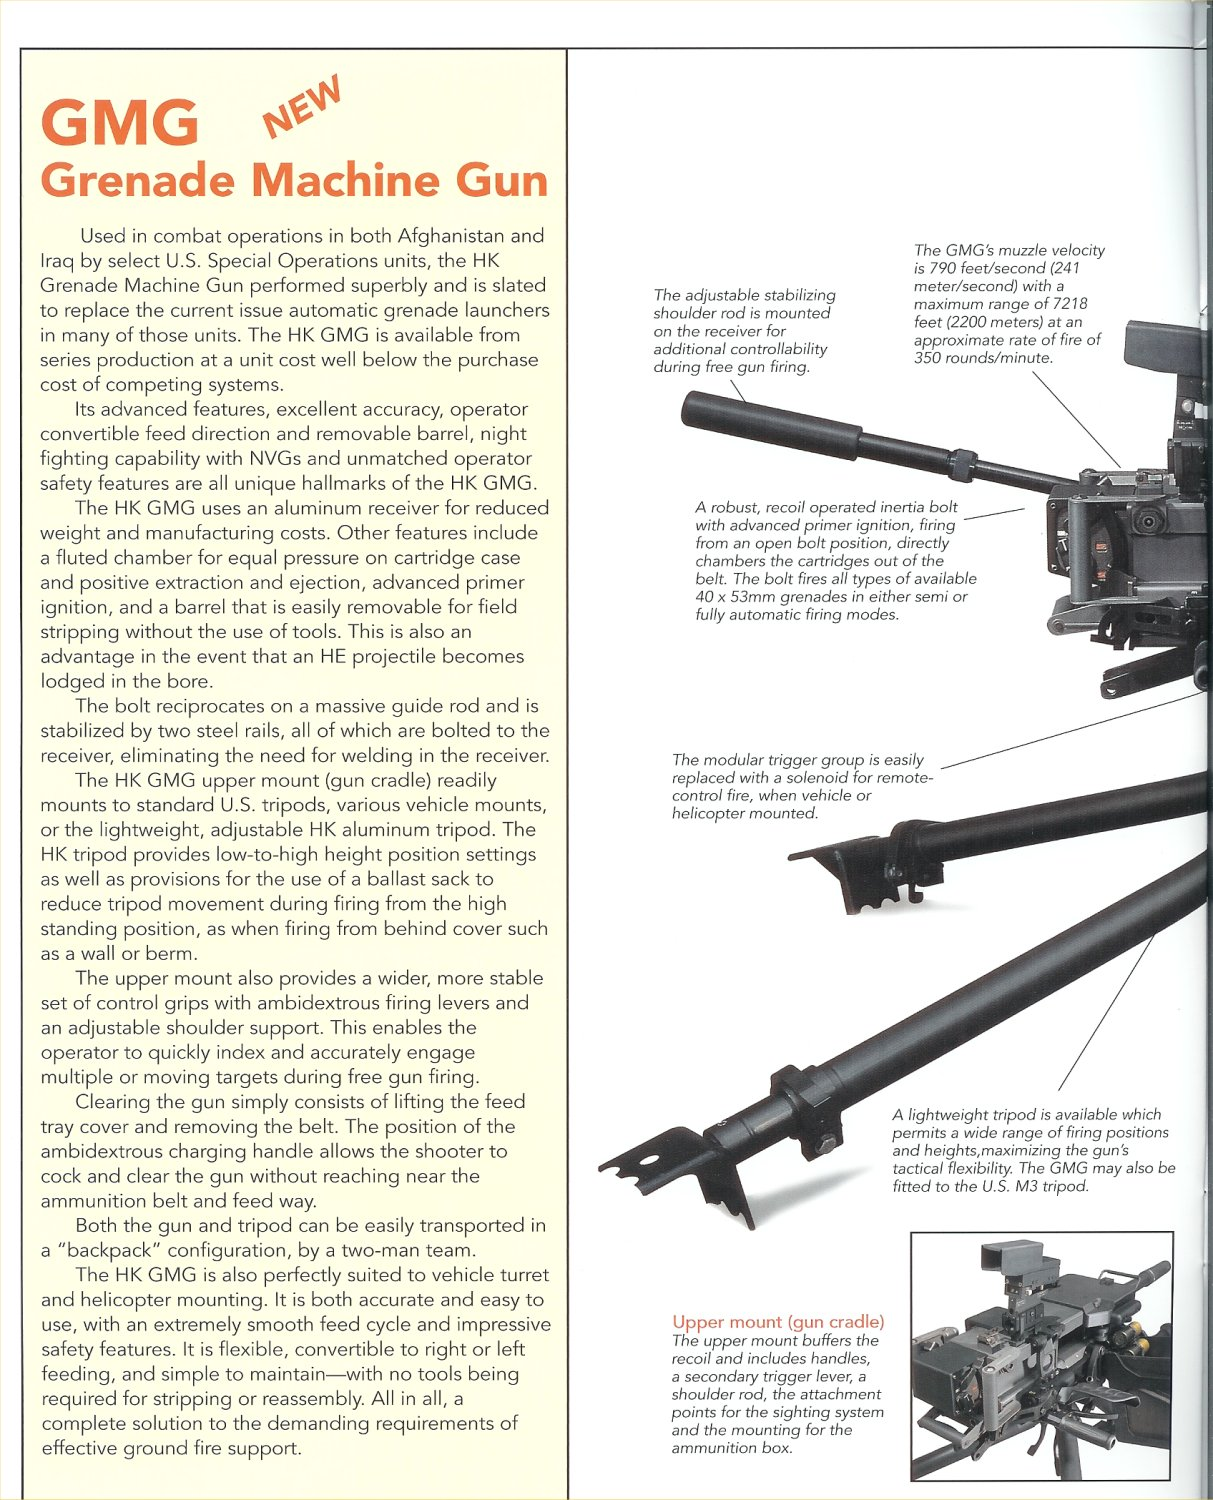 HK%20Grenade%20Machine%20Gun%20%28GMG%29 HK%20Defense%20Catalogue 1 <!  :en  >HK GMG (Grenade Machine Gun) Pics from SOF Week 2005/APBI<!  :  >